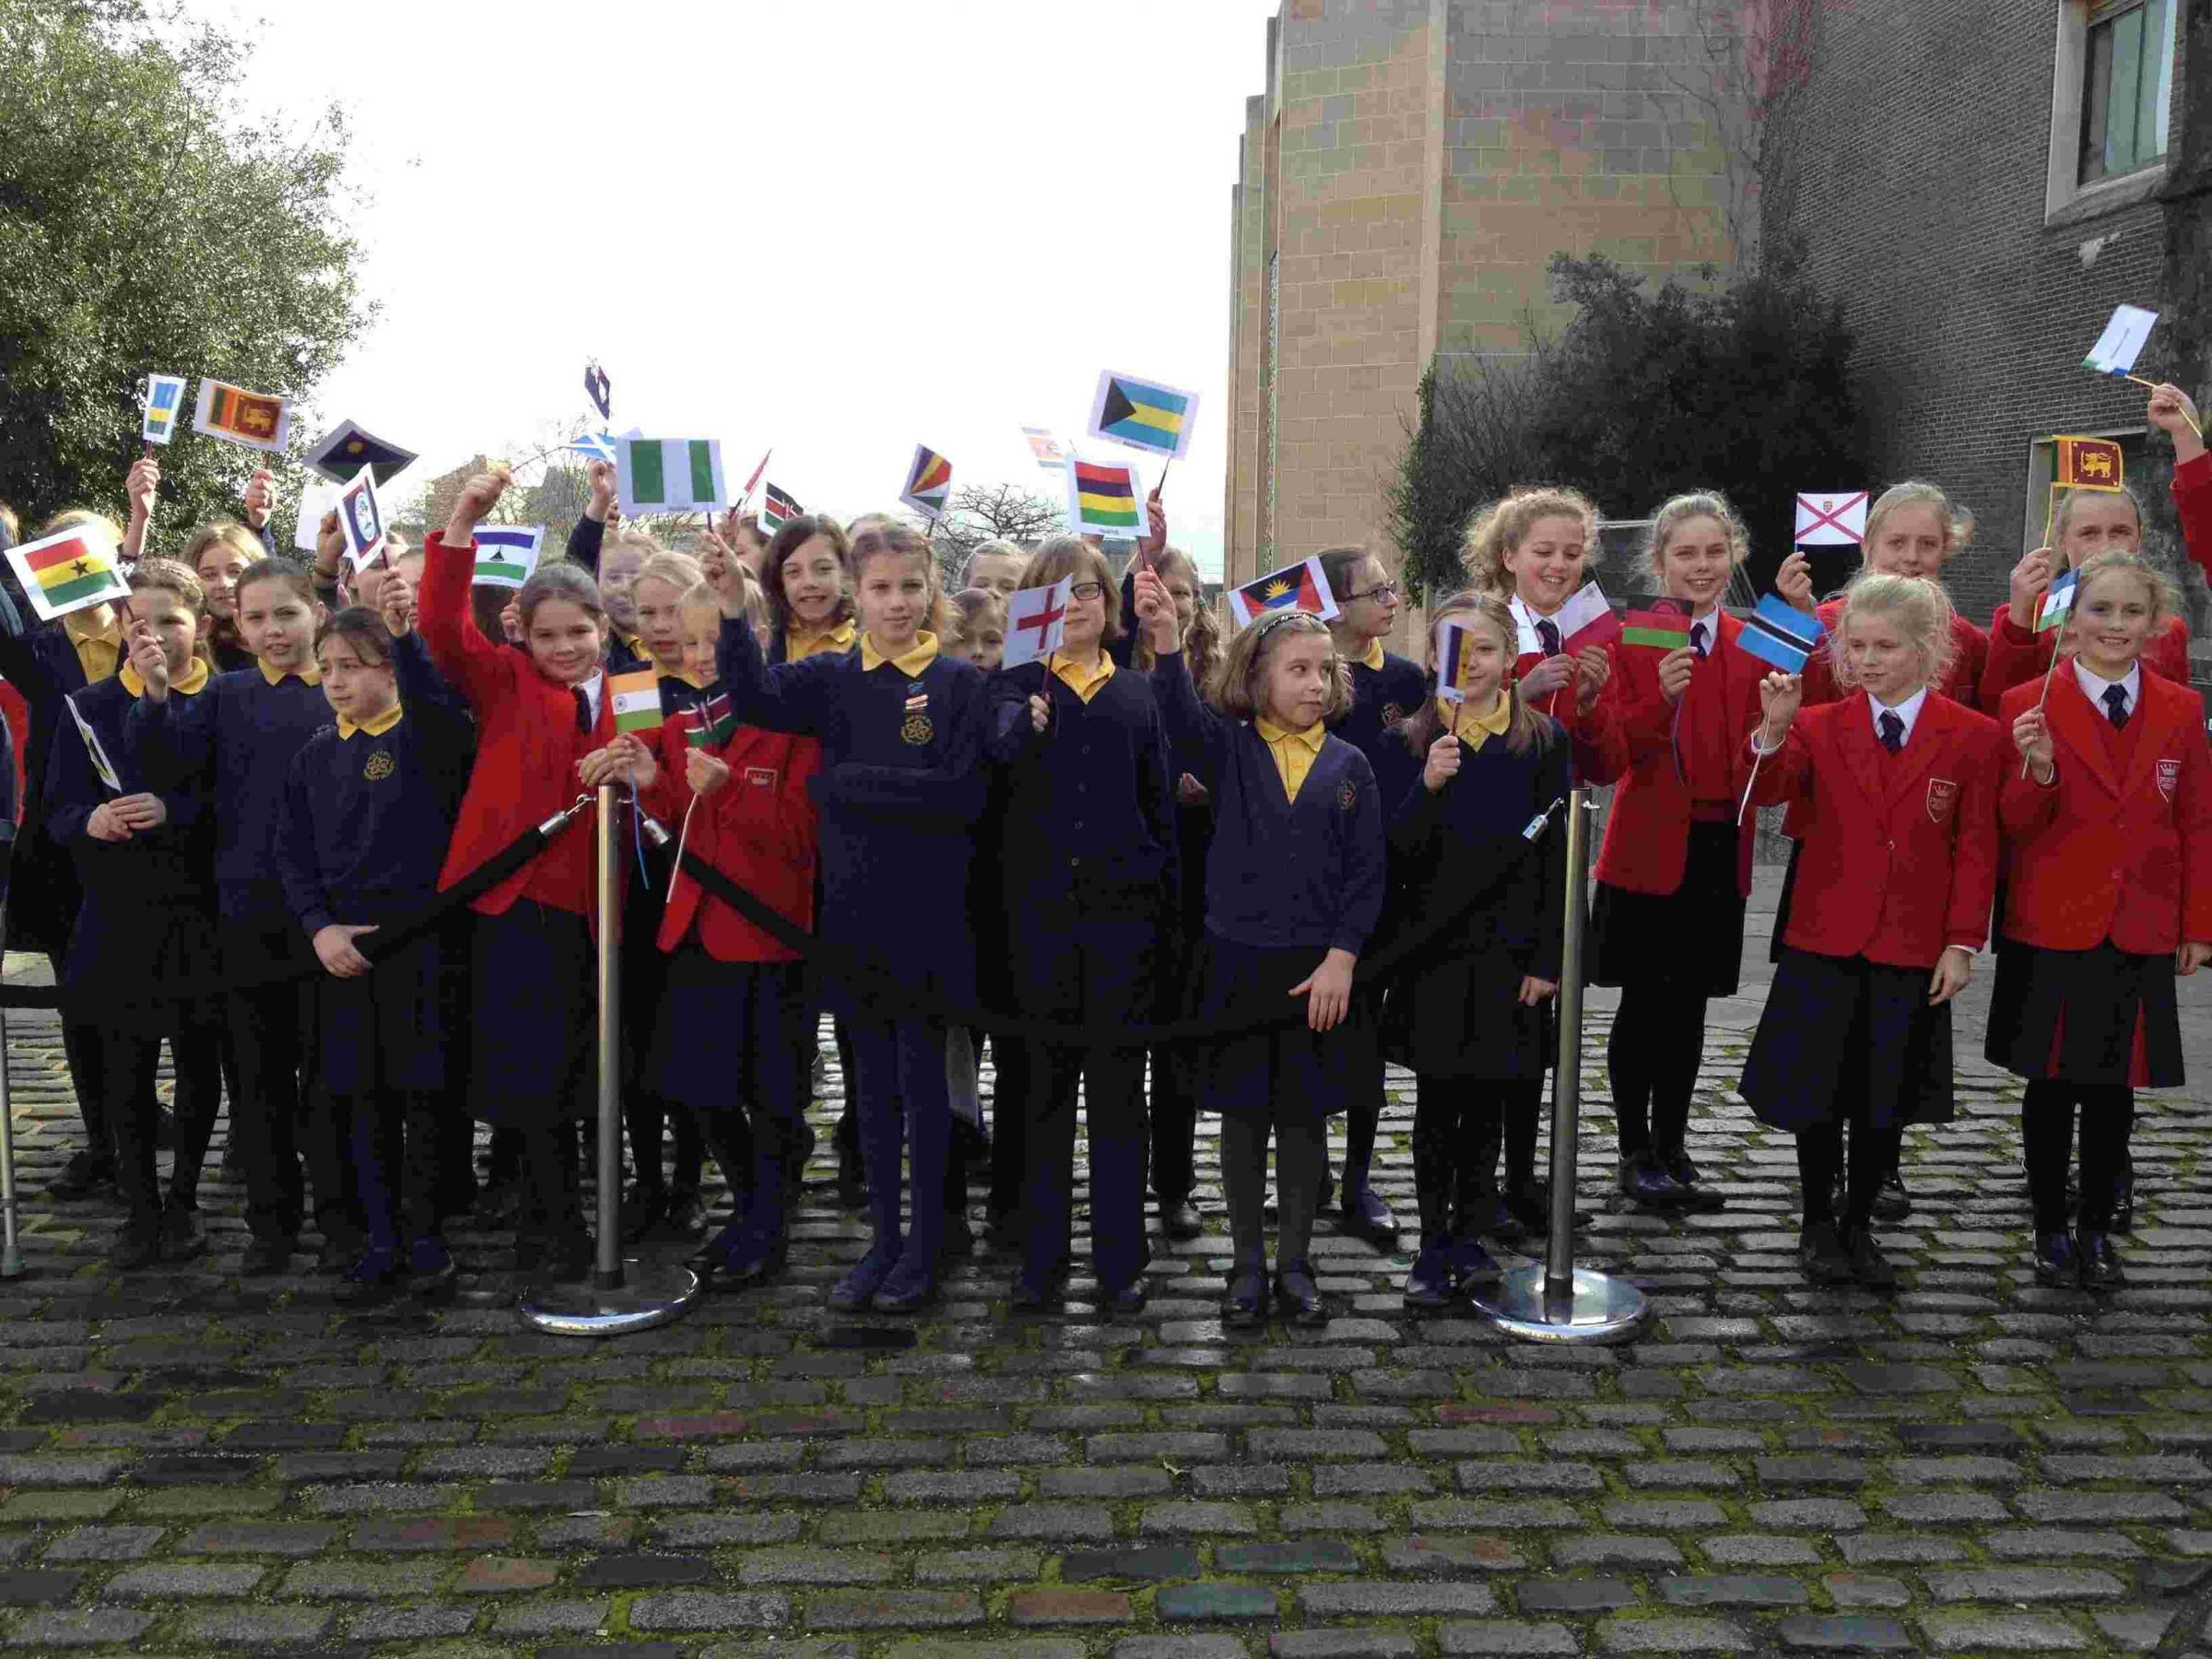 Western Church of England Primary School and Prince's Mead School choristers are in the spirit.